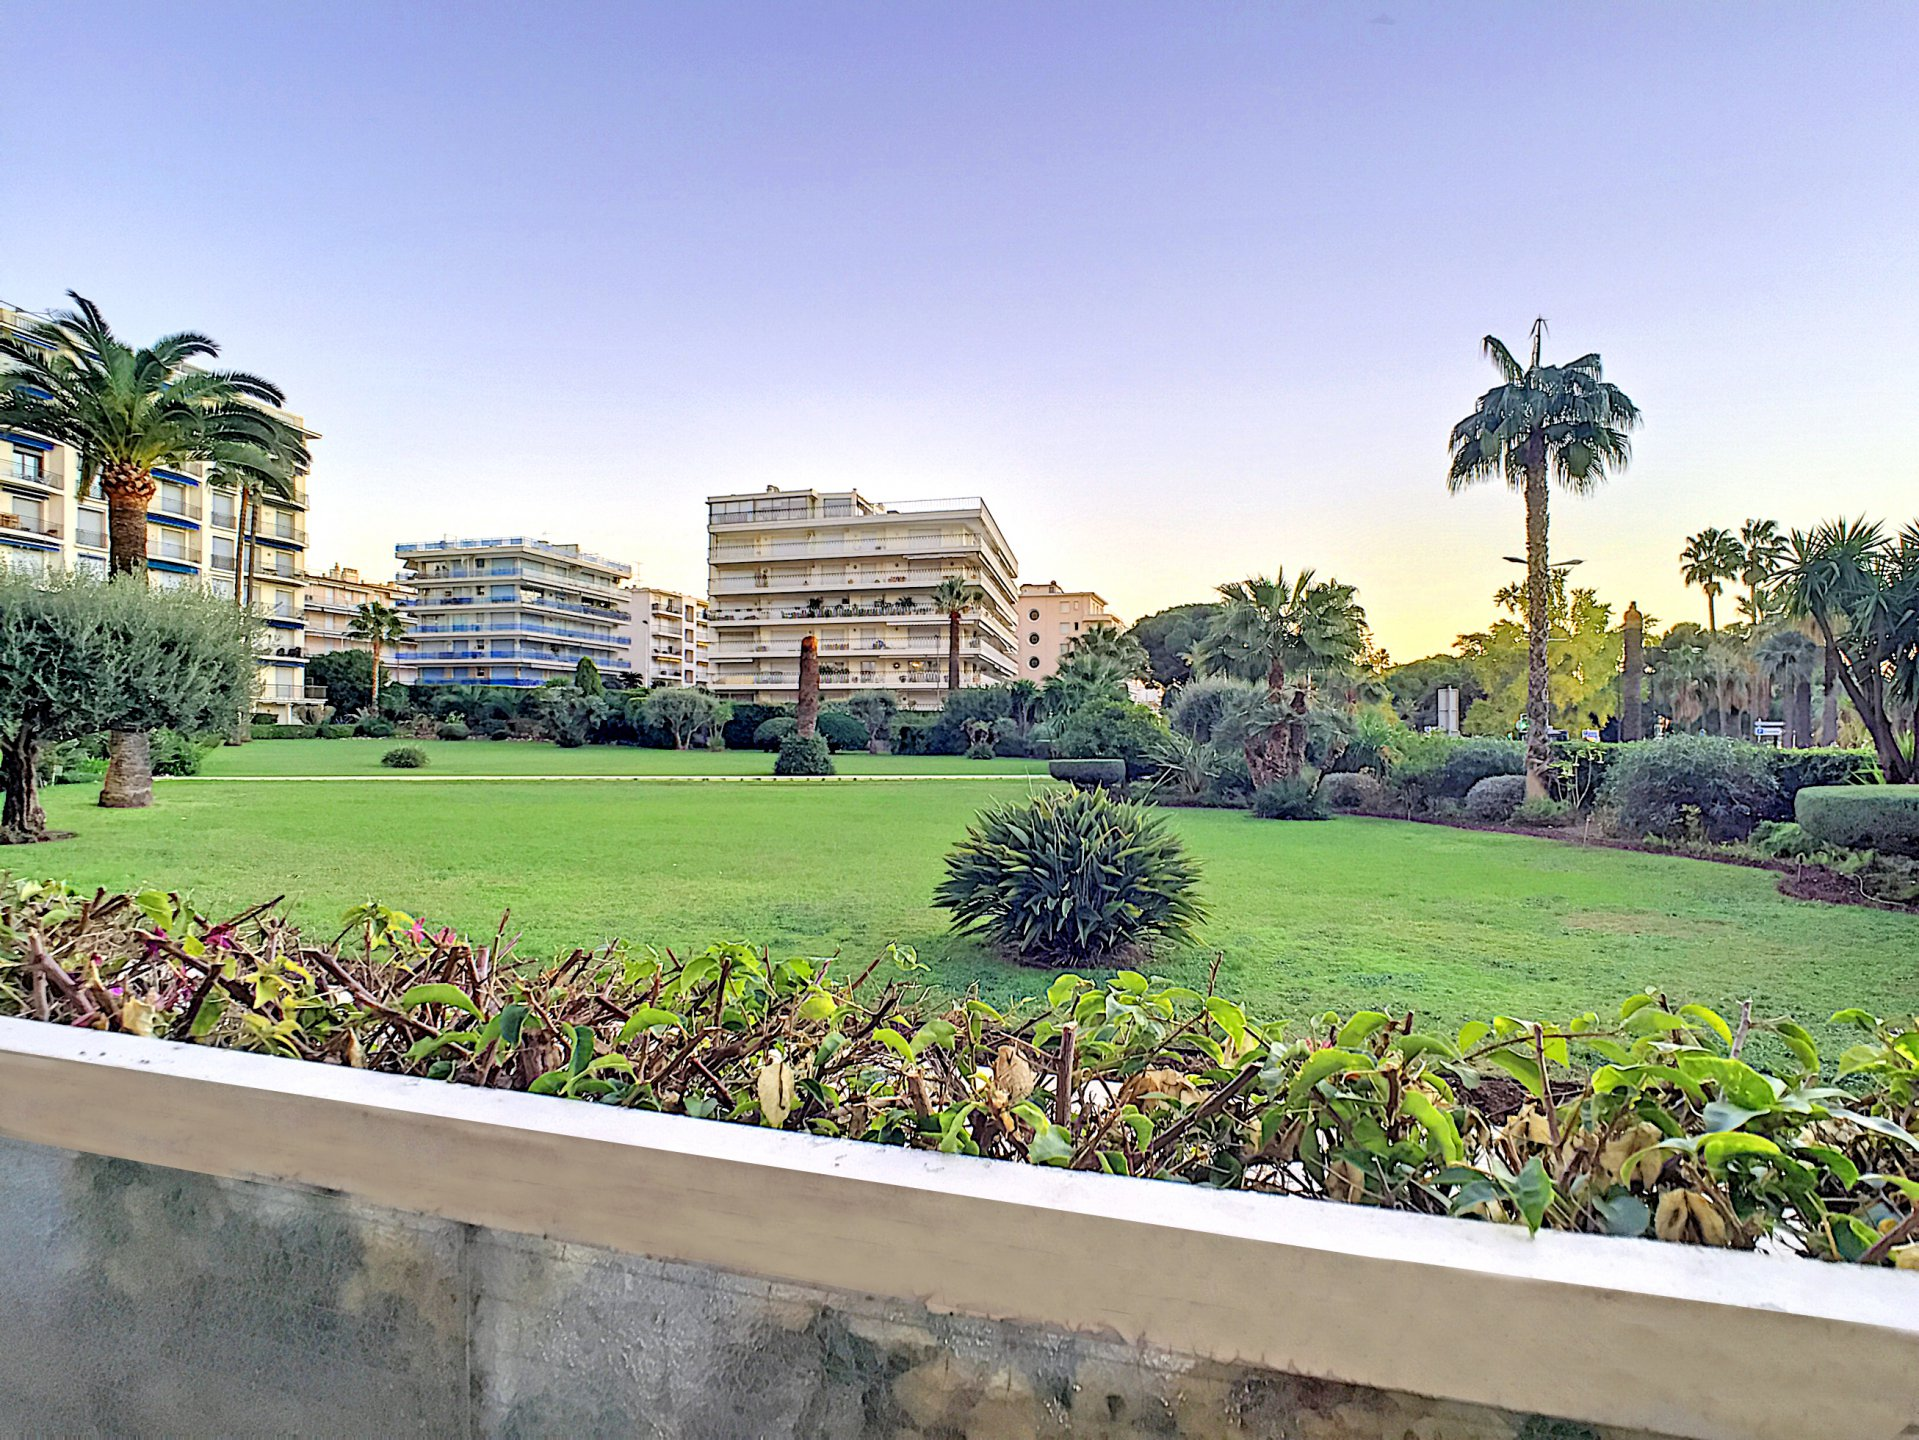 Cannes - Croisette 3 bedrooms flat with terrasse and garage